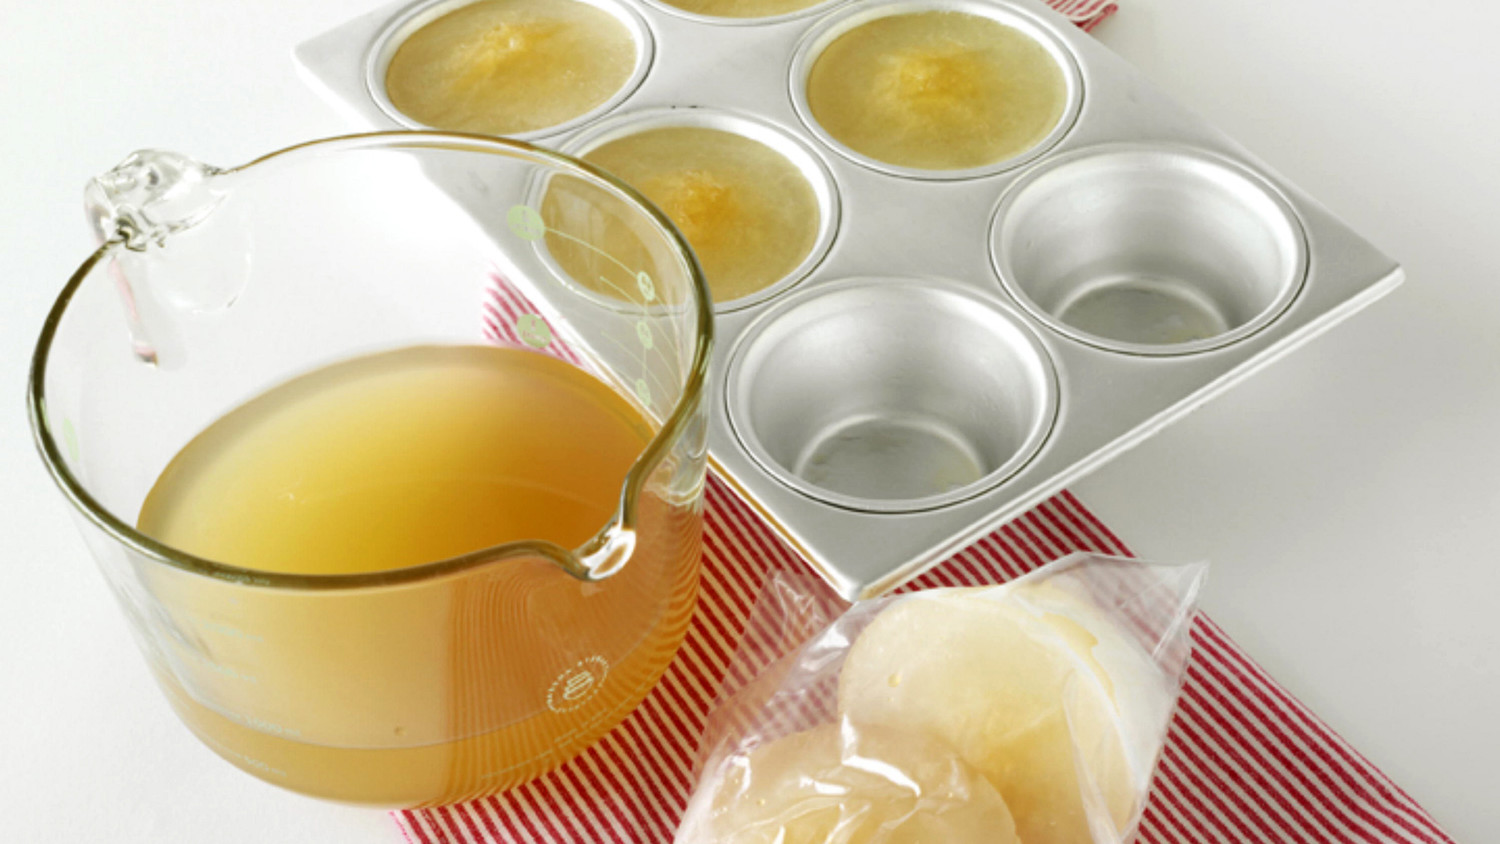 Here's Why You Should Store Homemade Stock in Ice Cube Trays